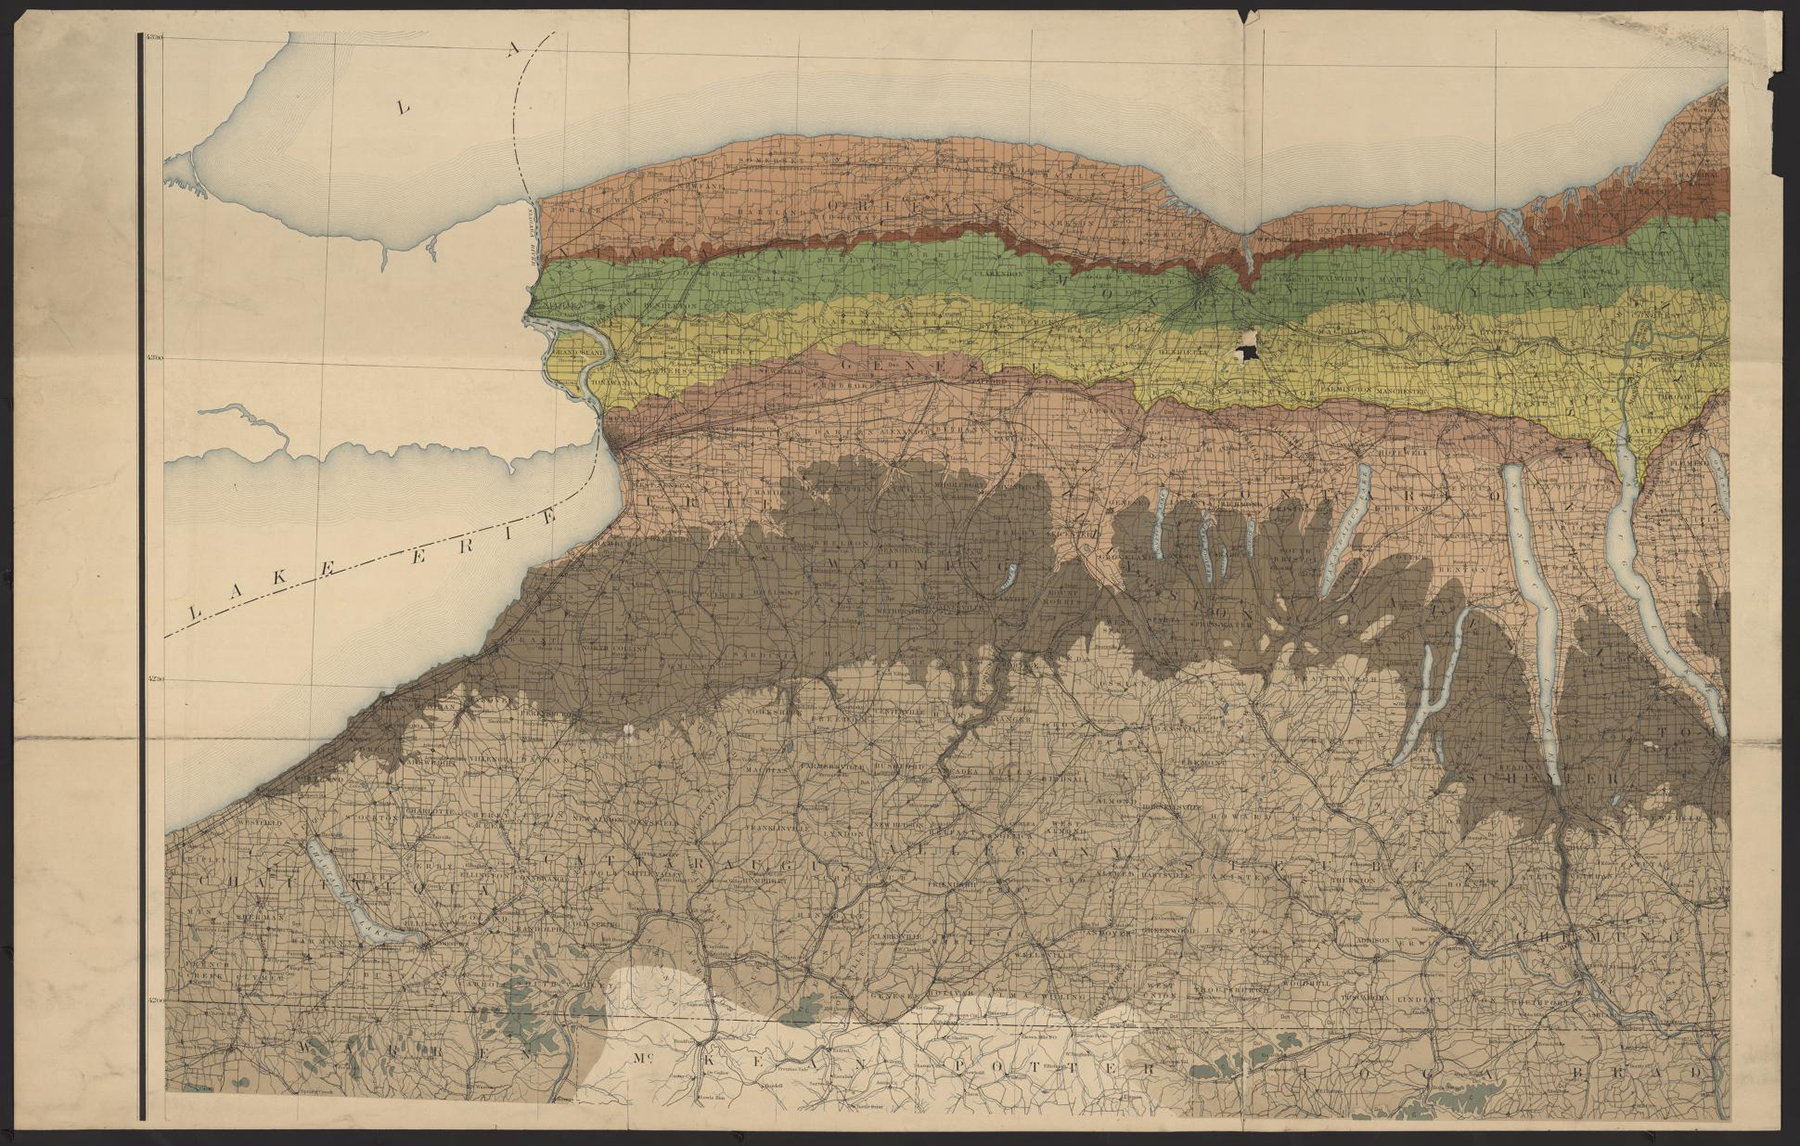 Preliminary geologic map of New York, exhibiting the structure of the state so far as known / Geological Survey of the State of New York ; prepared under the direction of James Hall by W.J. McGee. http://quod.lib.umich.edu/c/clark1ic/x-009356600/39015091903891. University of Michigan Library Digital Collections. Accessed: February 28, 2019.